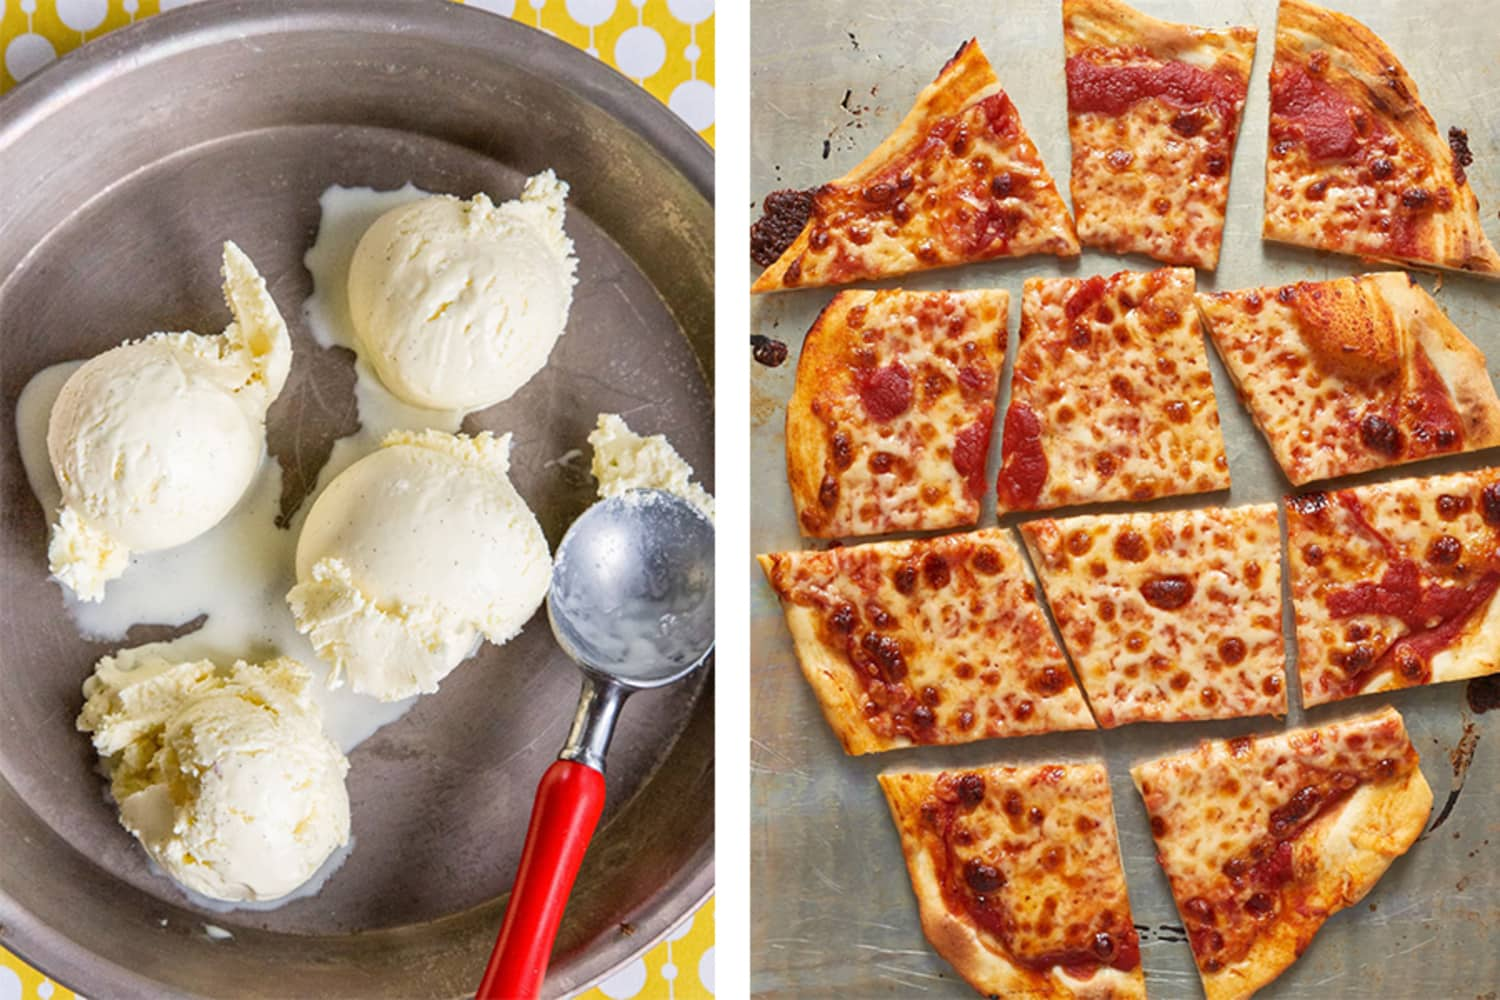 The Ultimate Ice Cream and Pizza Topping Pairing